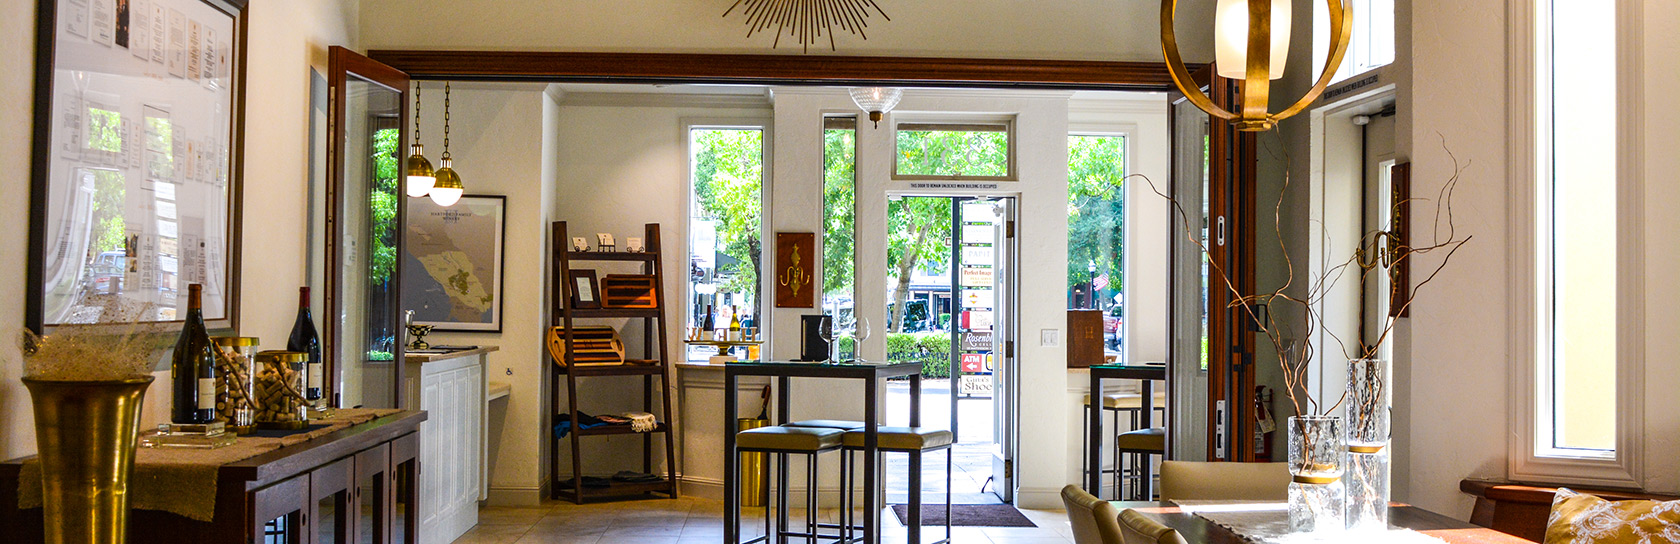 Tasting Room in Downtown Healdsburg